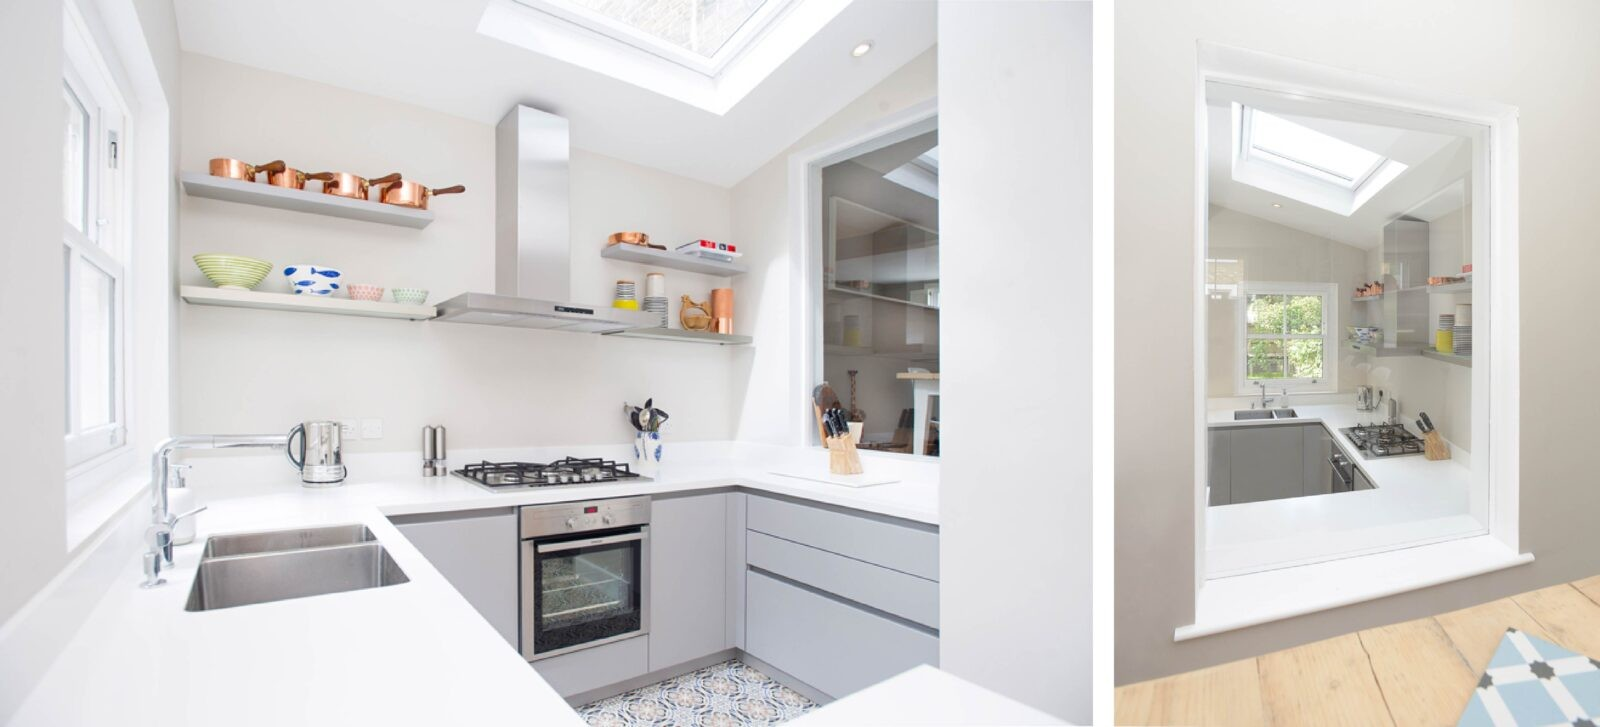 Renovation Ideas For Small Kitchens Build Team Blog Design The New With The Old